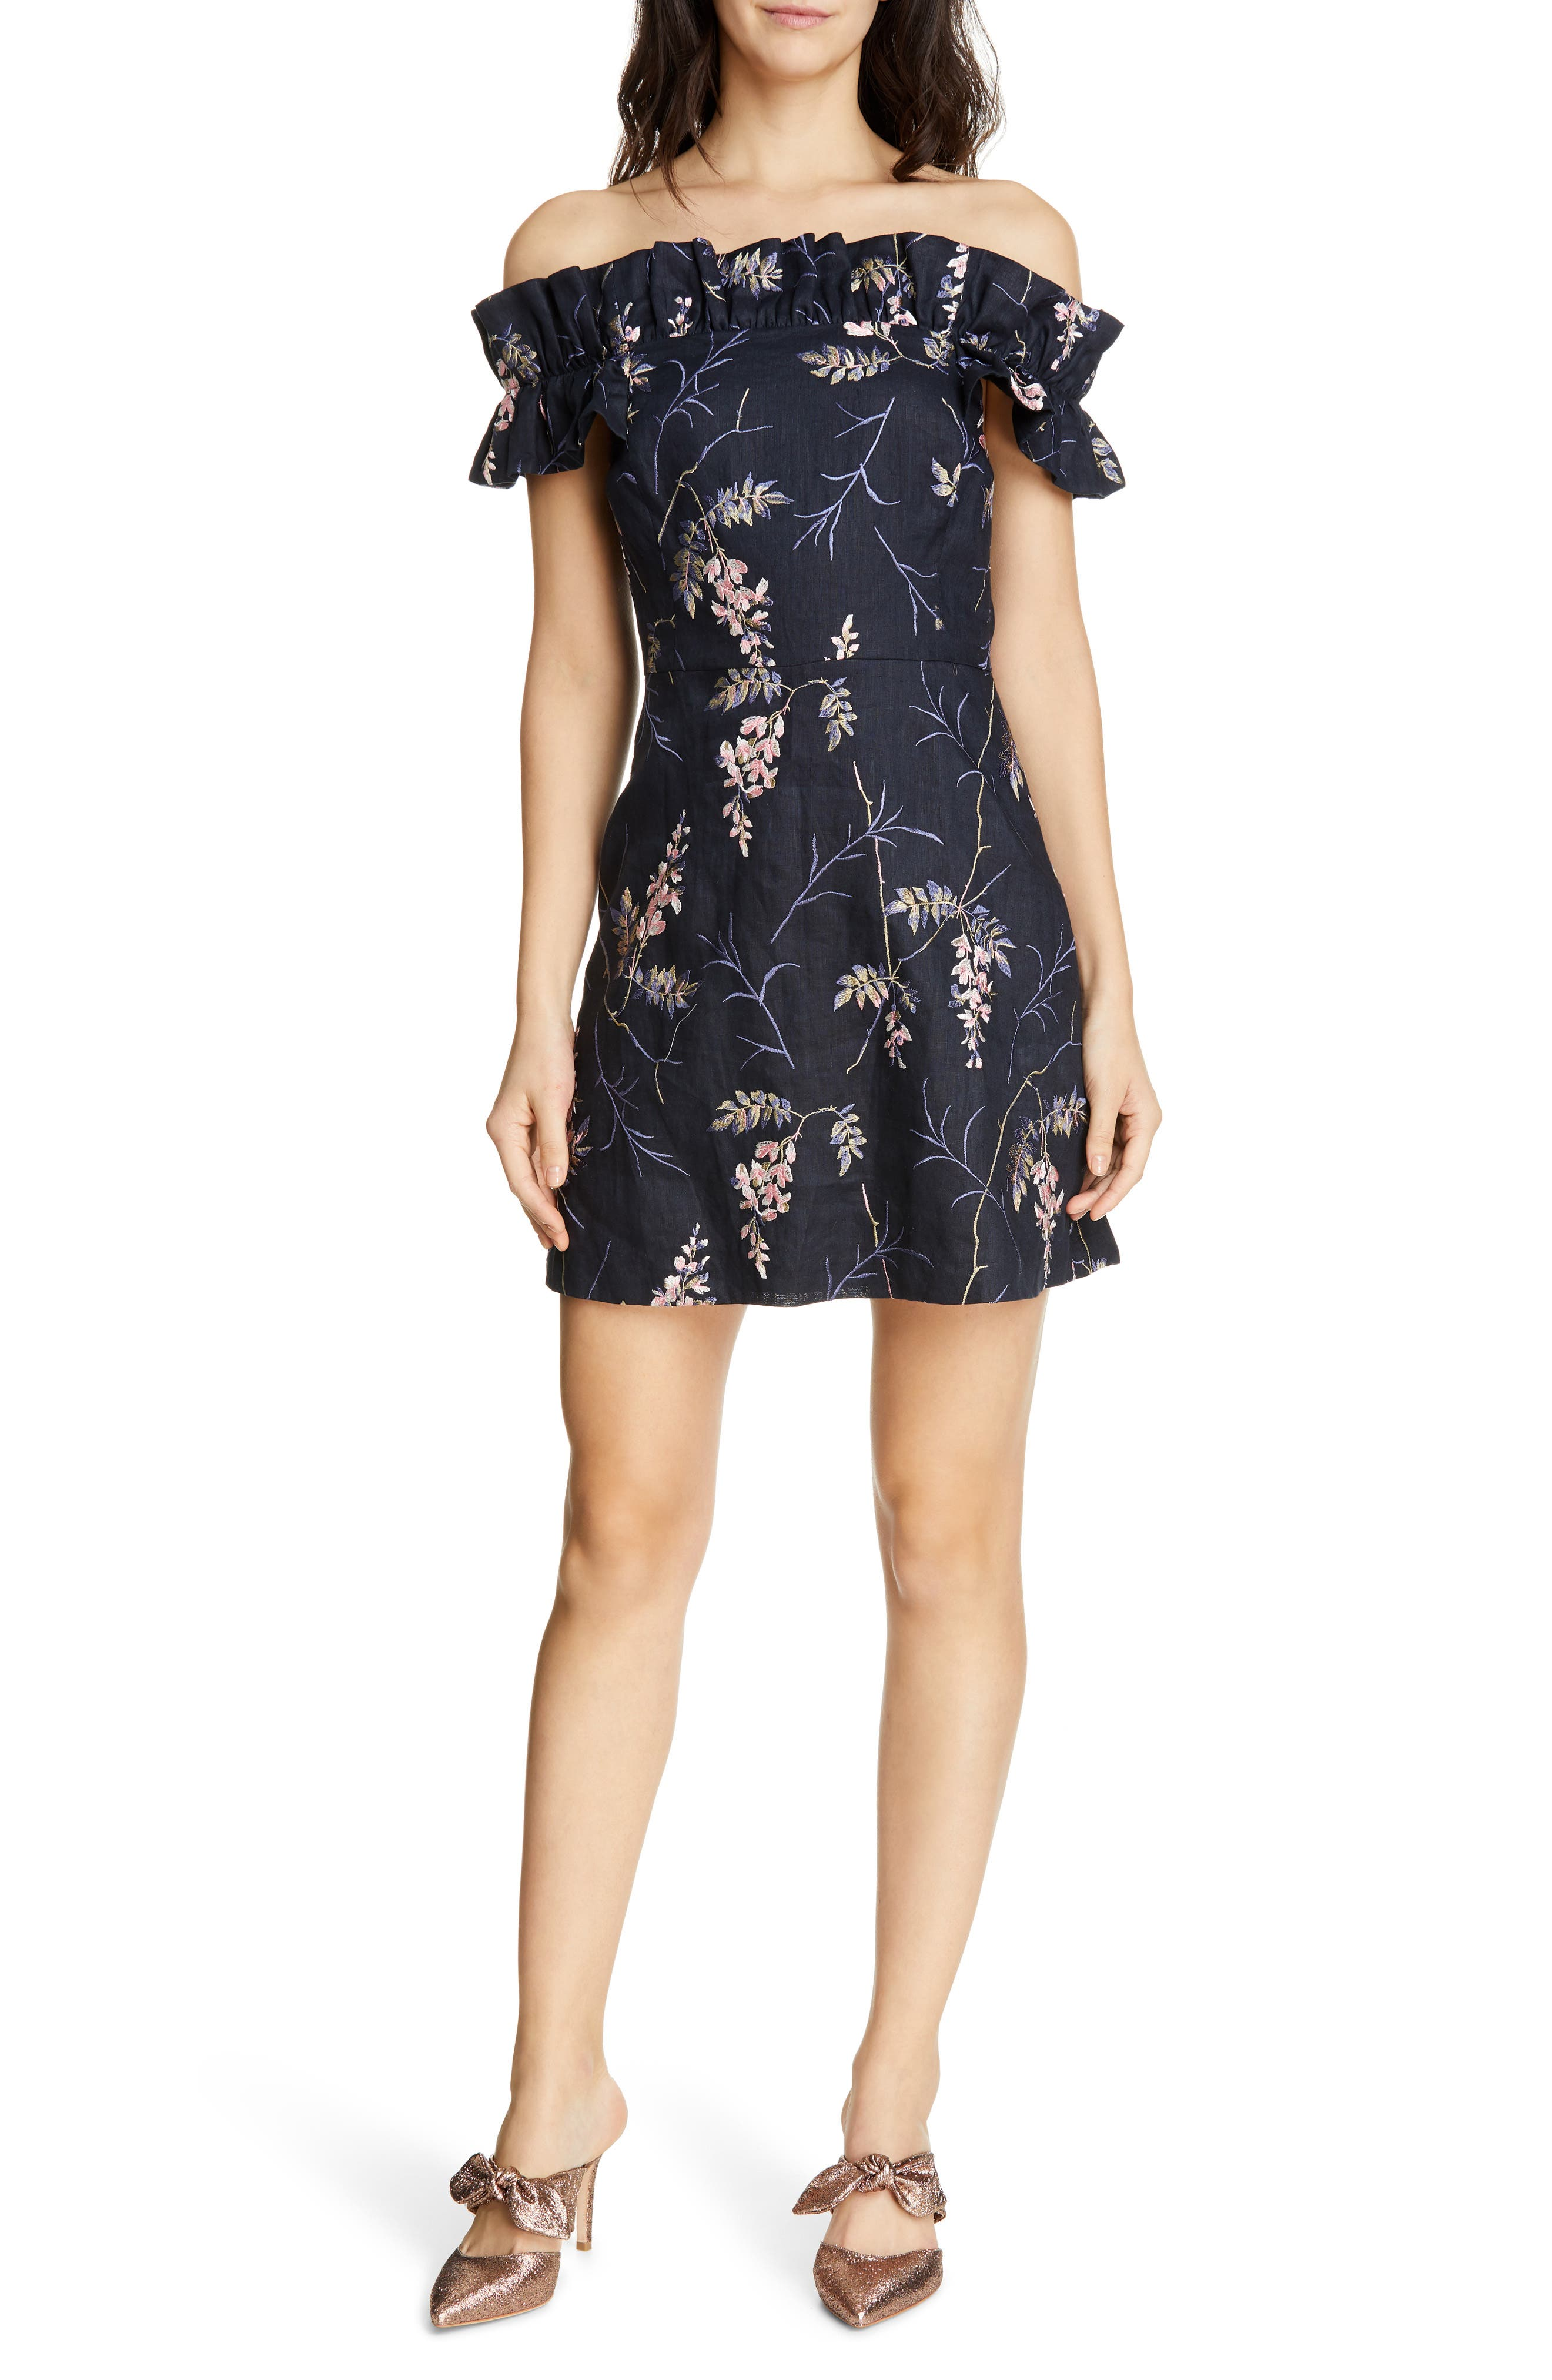 REBECCA TAYLOR, Ivie Off the Shoulder Embroidered Detail Linen Dress, Main thumbnail 1, color, NAVY COMBO